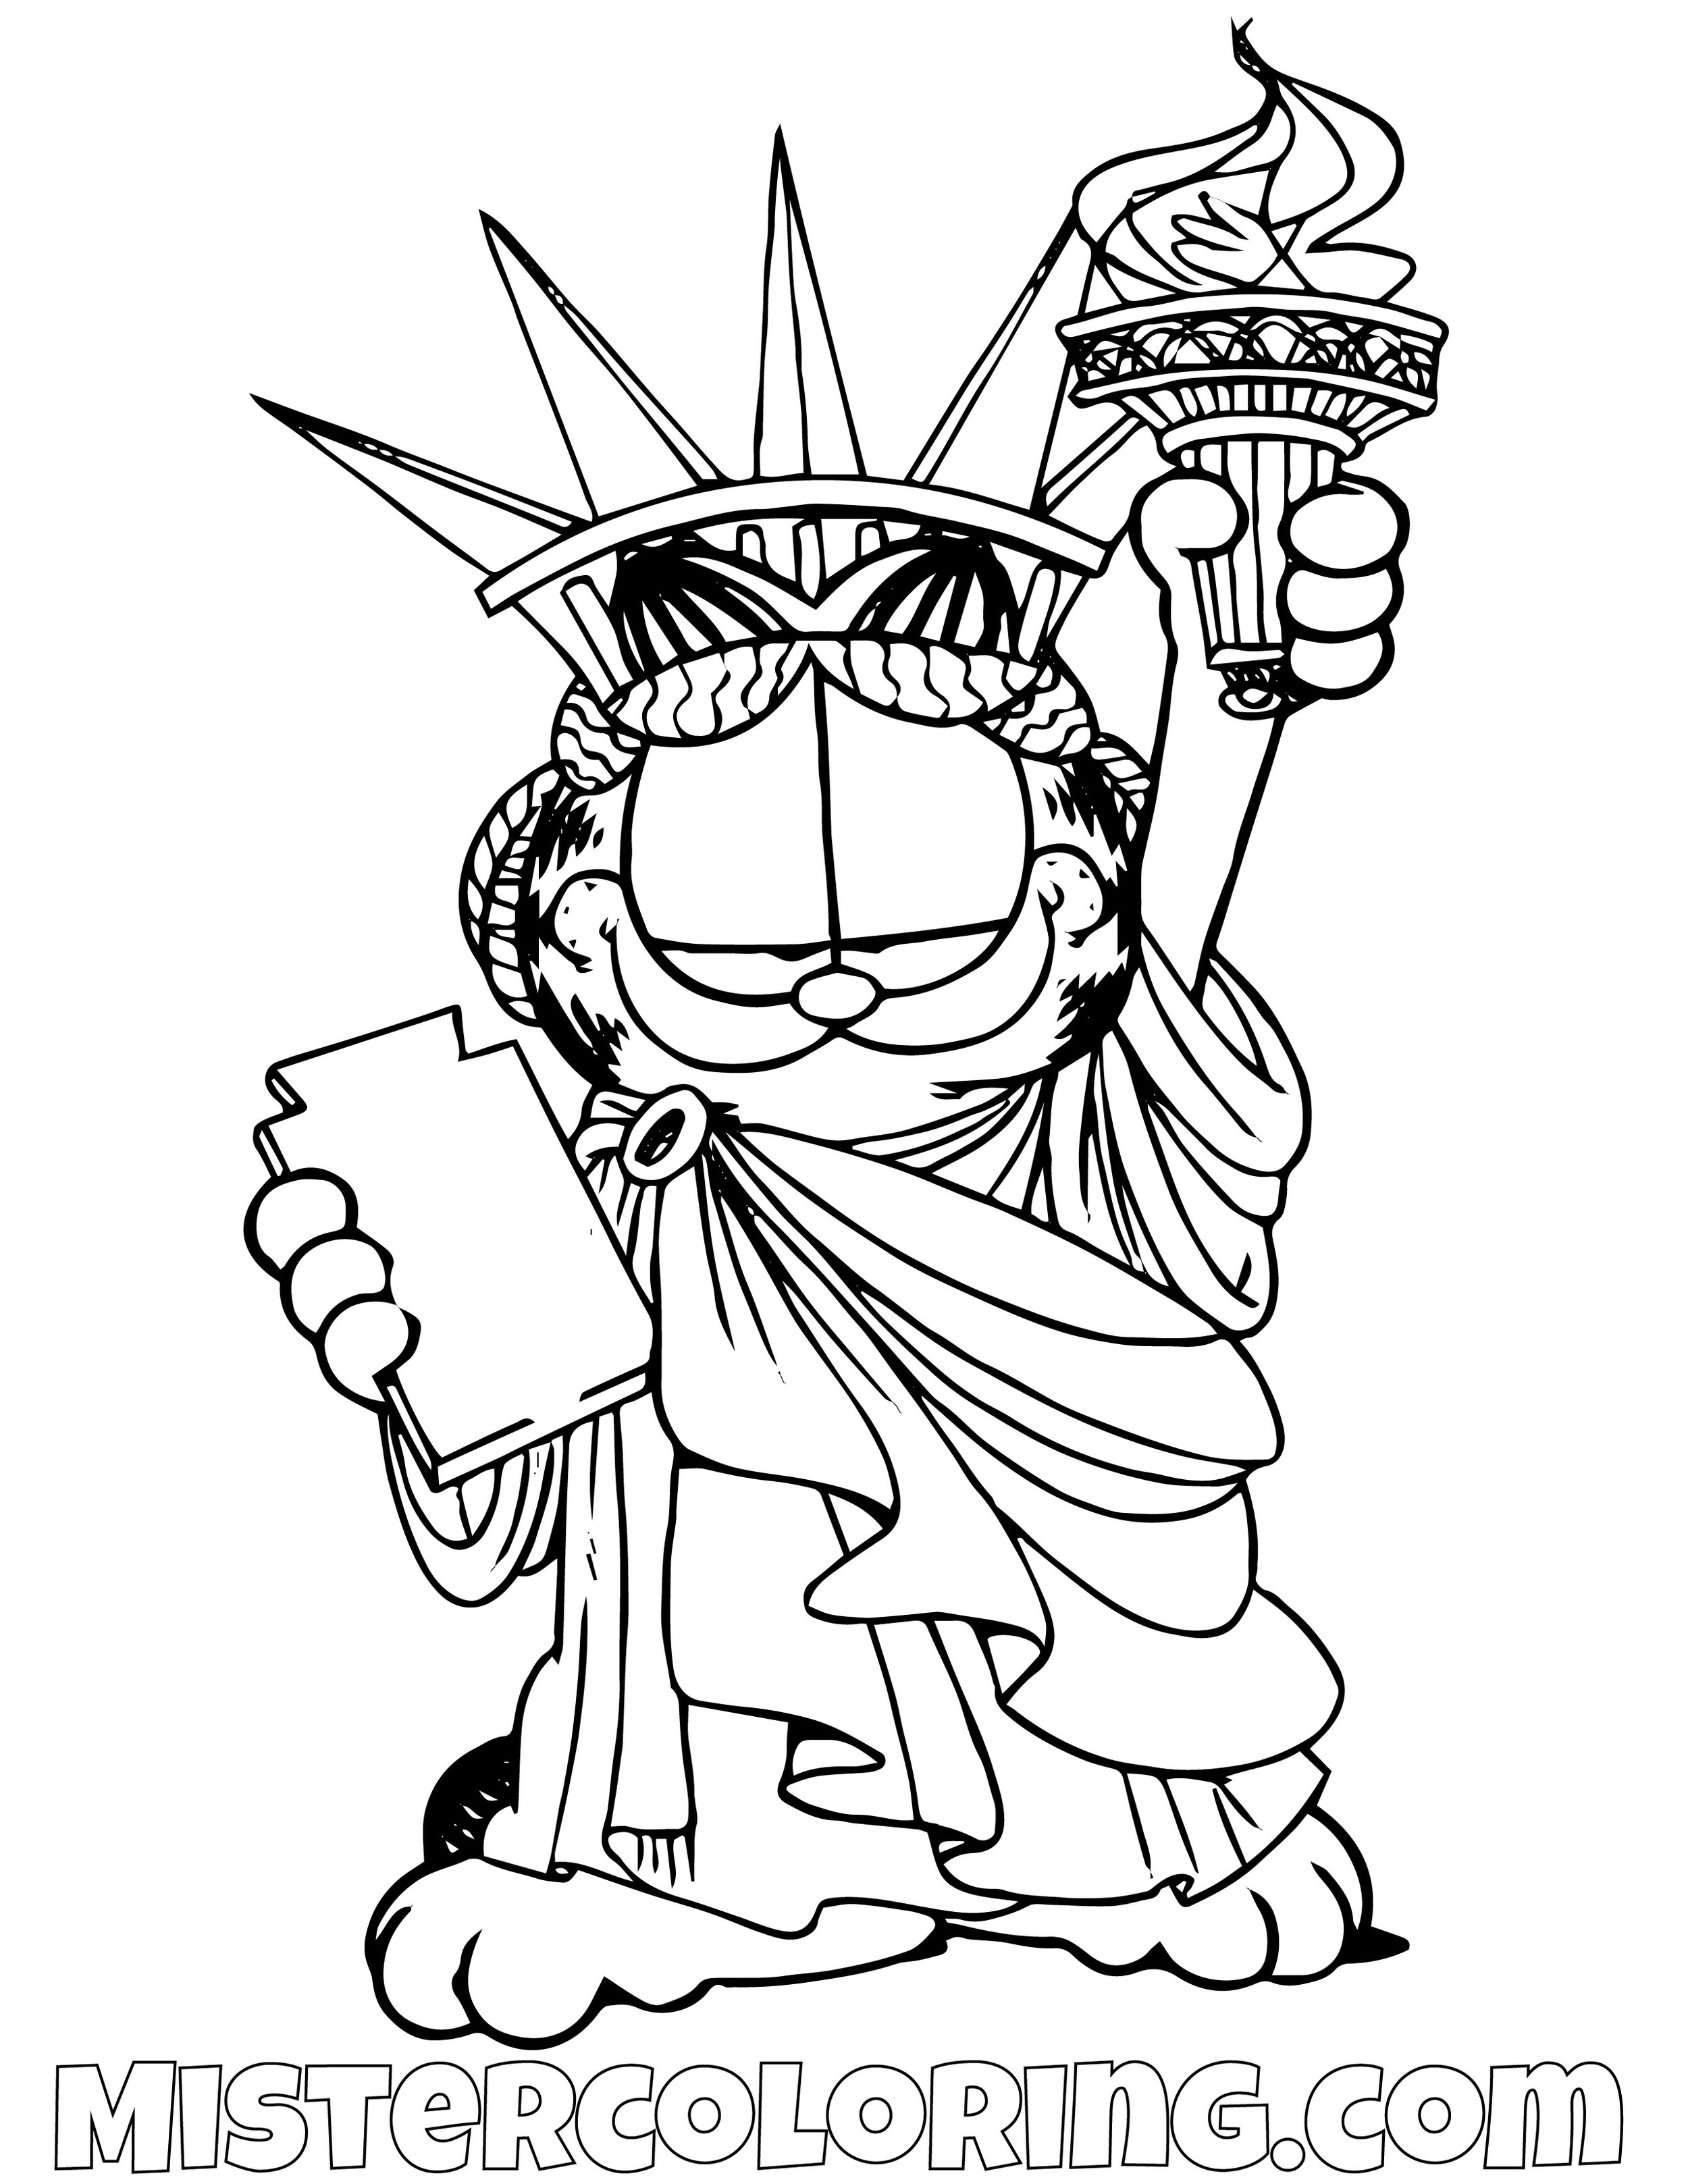 Garfield As The Liberty Statue Coloring Page